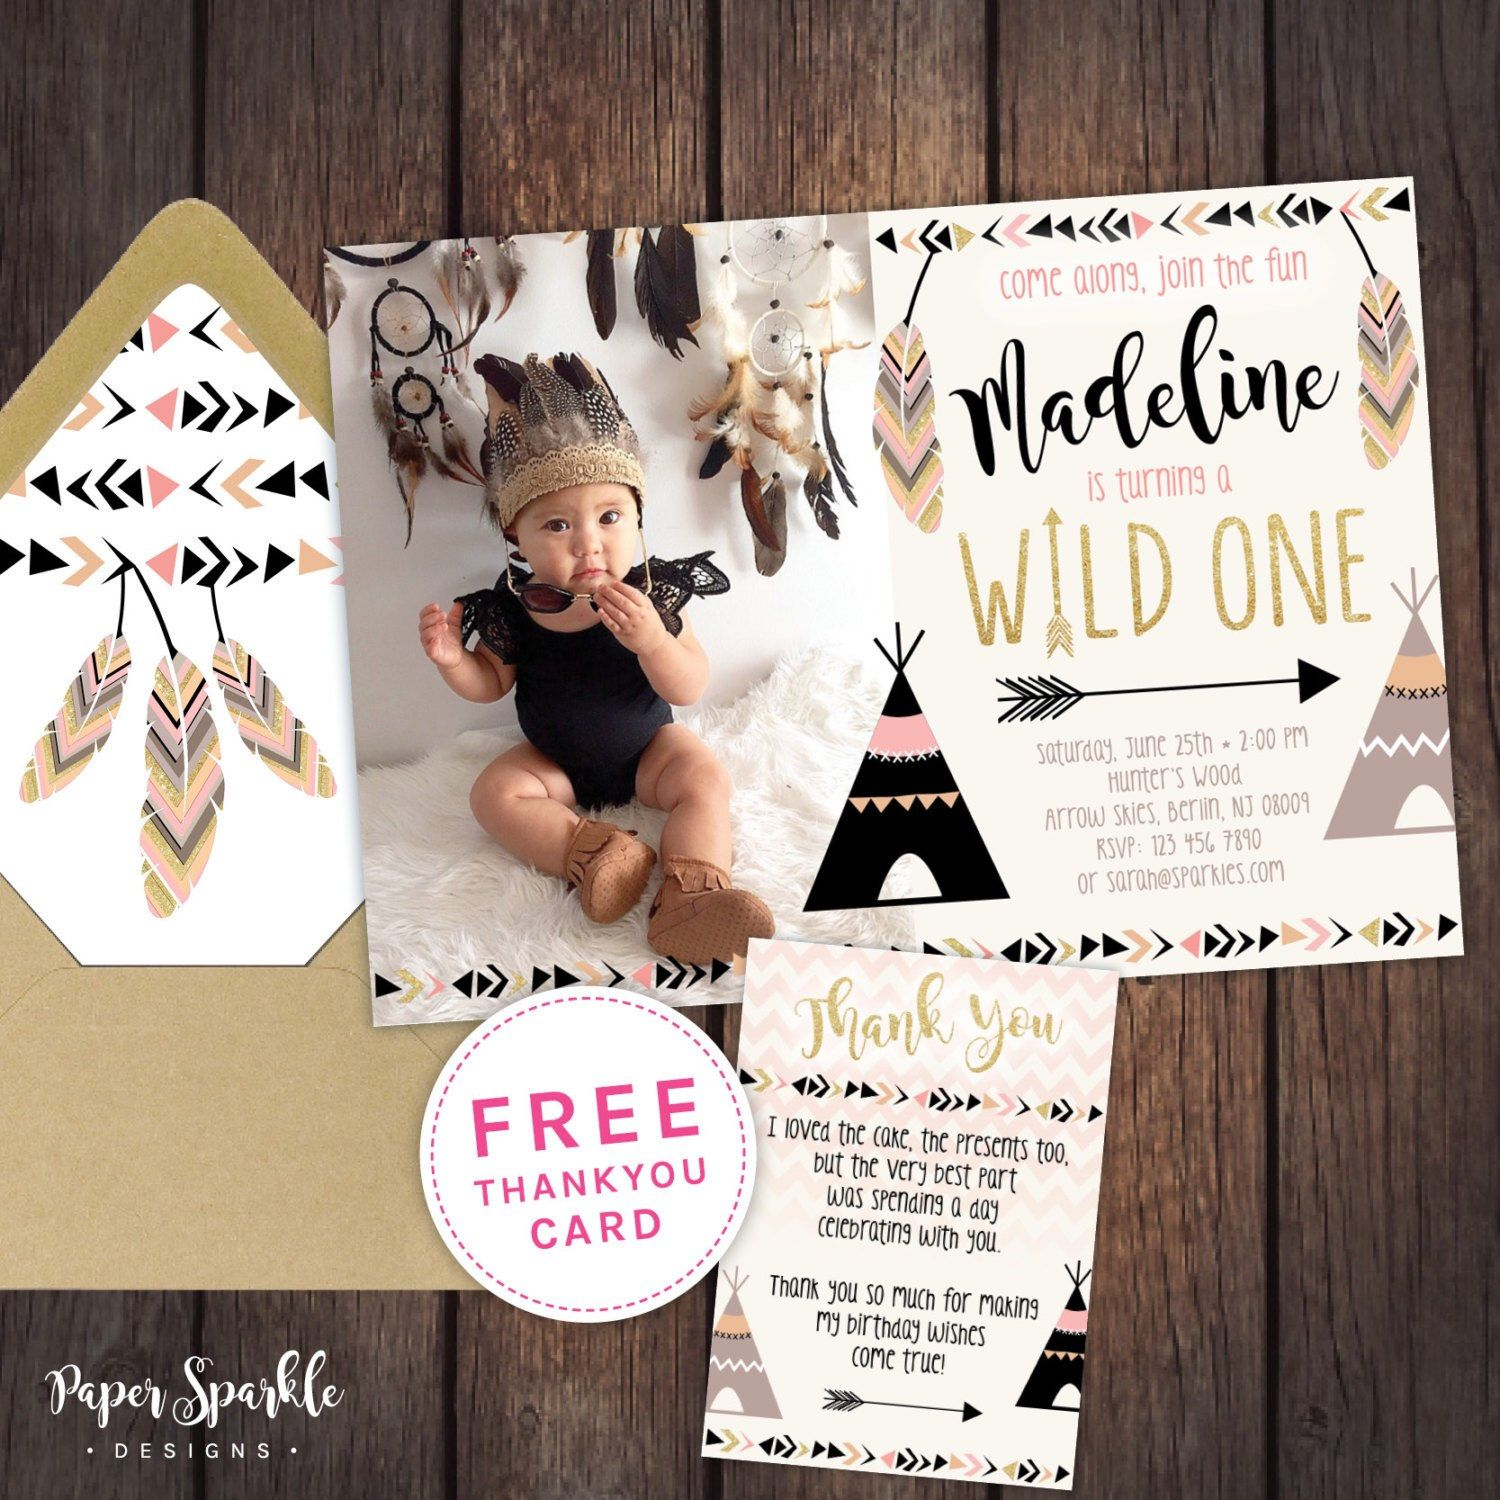 wild one birthday invitation template ; 12f6700880a65766885a4a1d079a5667